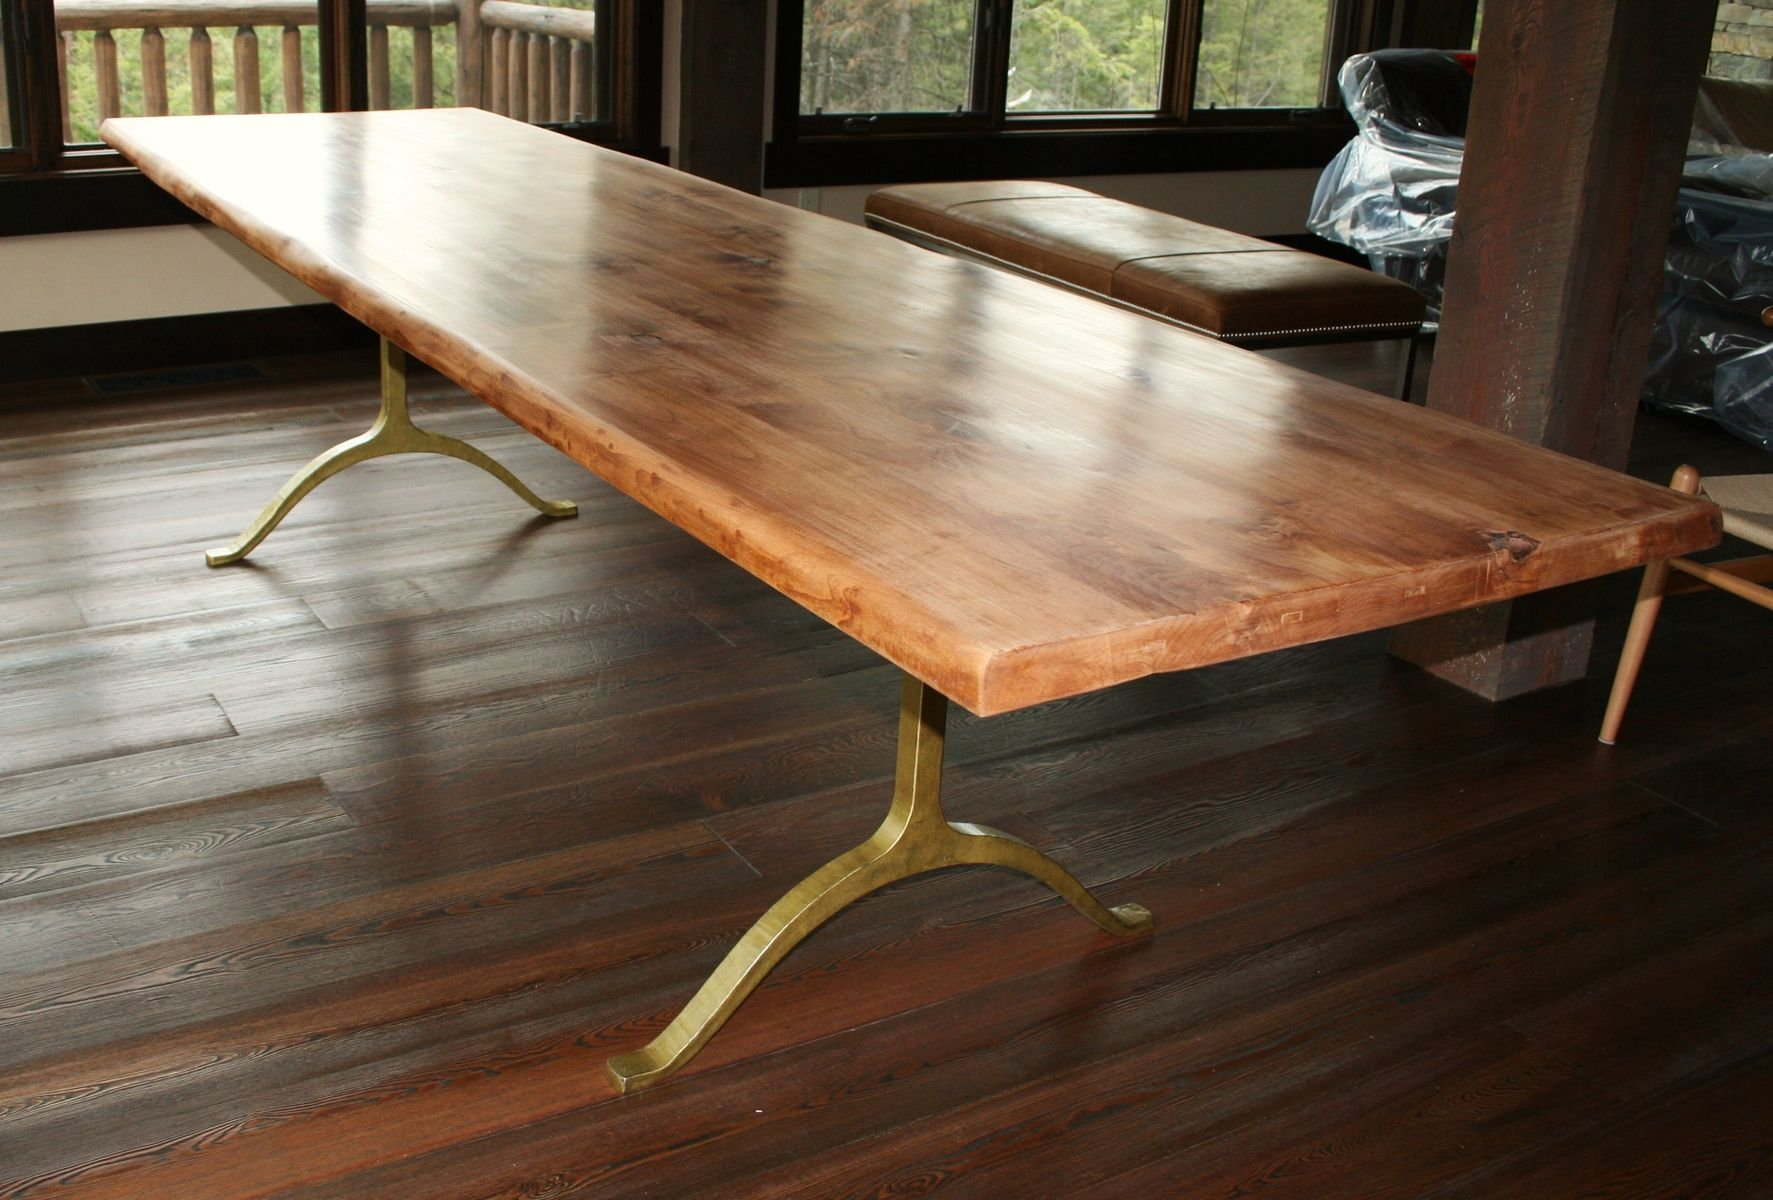 Rustic Beach Coffee Table Handmade Rustic Dining Table By Echo Peak Design